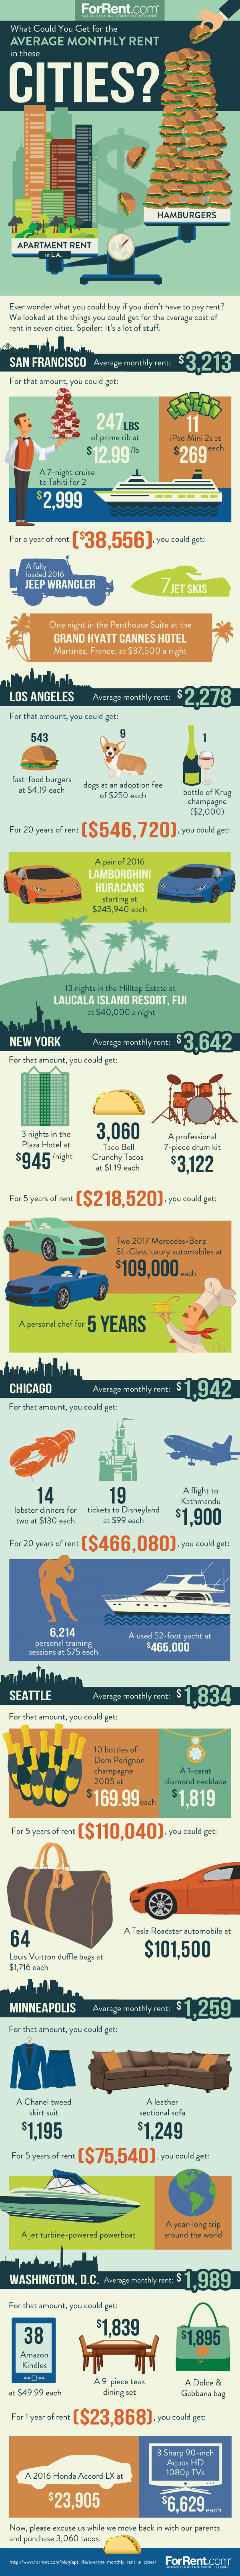 Rent in Major US Cities - Few Better Way to Spend it  Infographic